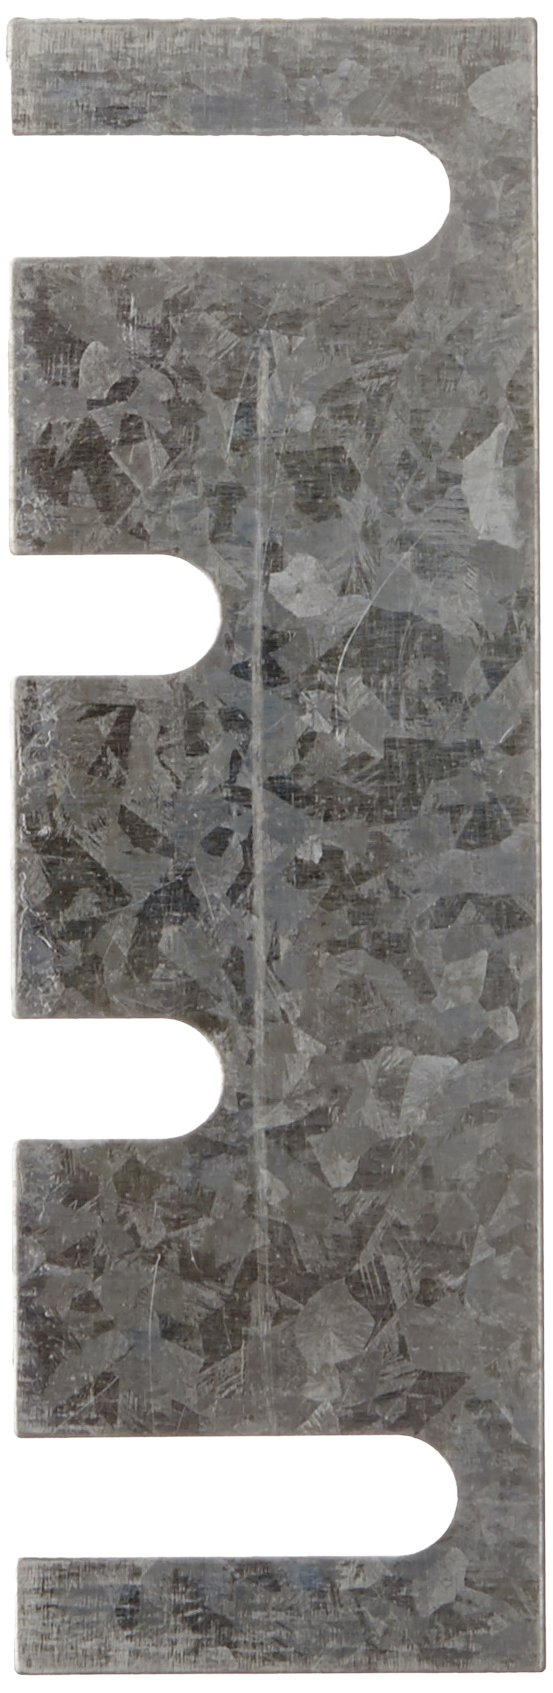 """Rockwood HS42 Steel Hinge Shim, 1-7/16"""" Width x 4-1/2"""" Height x 0.028"""" Thick, Galvanized Coat Finish (Pack of 50)"""